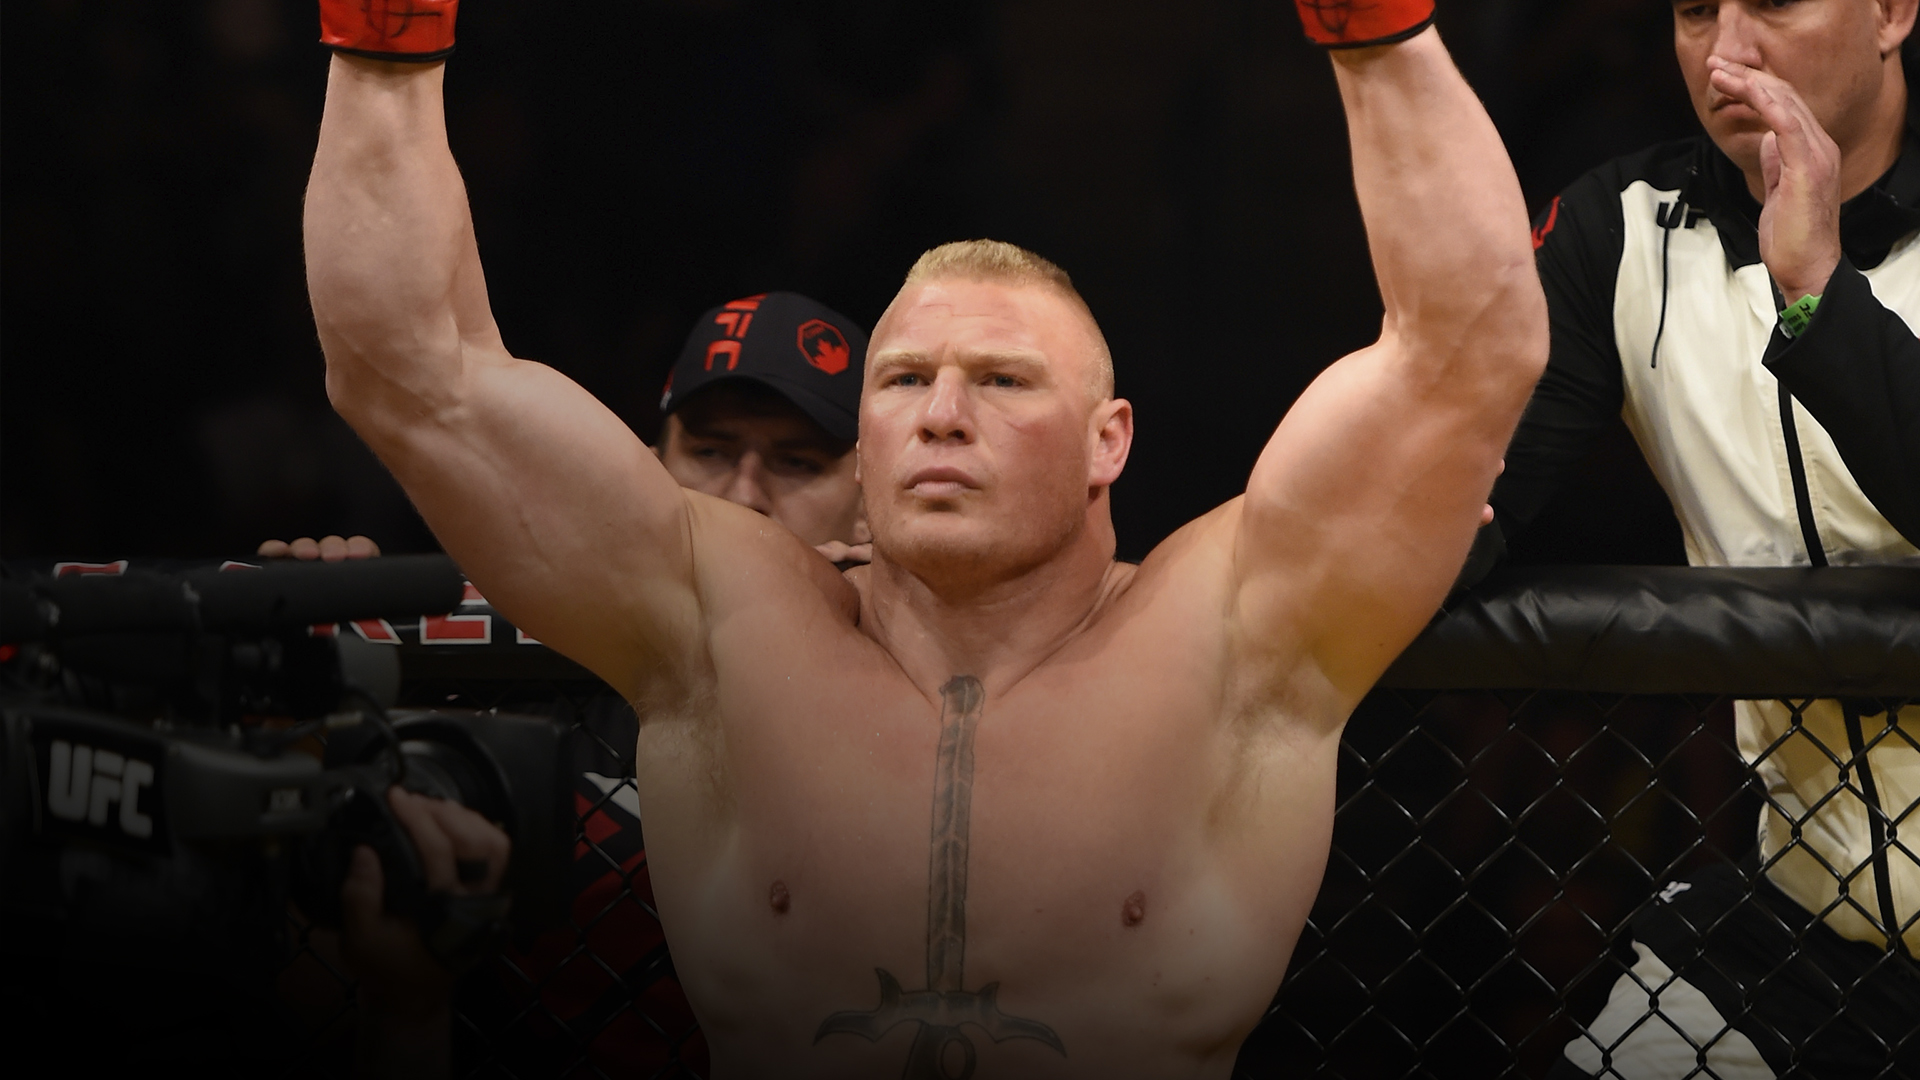 Brock Lesnar prepares to face Mark Hunt of New Zealand in their heavyweight bout during the UFC 200 event on July 9, 2016 at T-Mobile Arena in Las Vegas, Nevada. (Photo by Josh Hedges/Zuffa LLC)